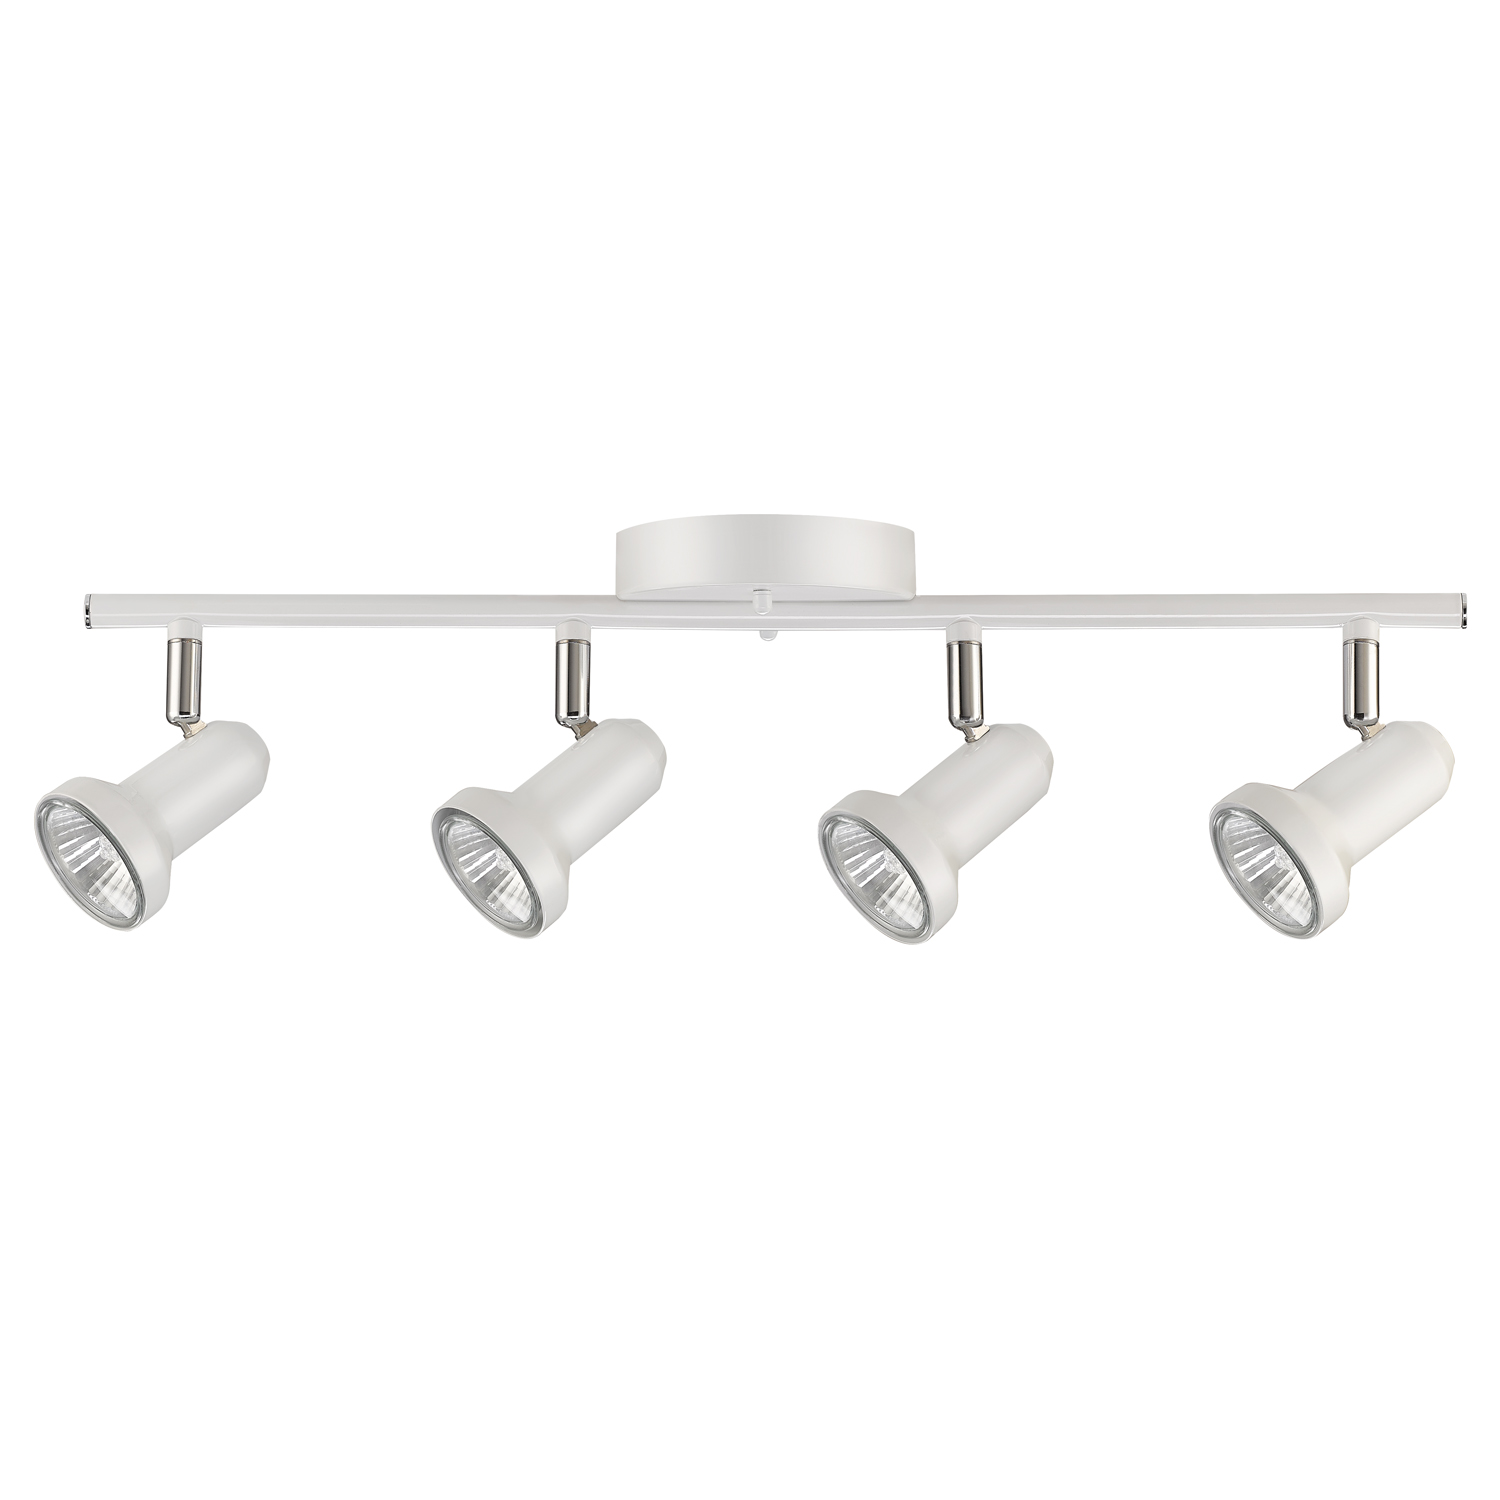 Globe Electric 50 Watt Melo 4-Light Glossy White Track Light, Bulbs Included by Globe Electric